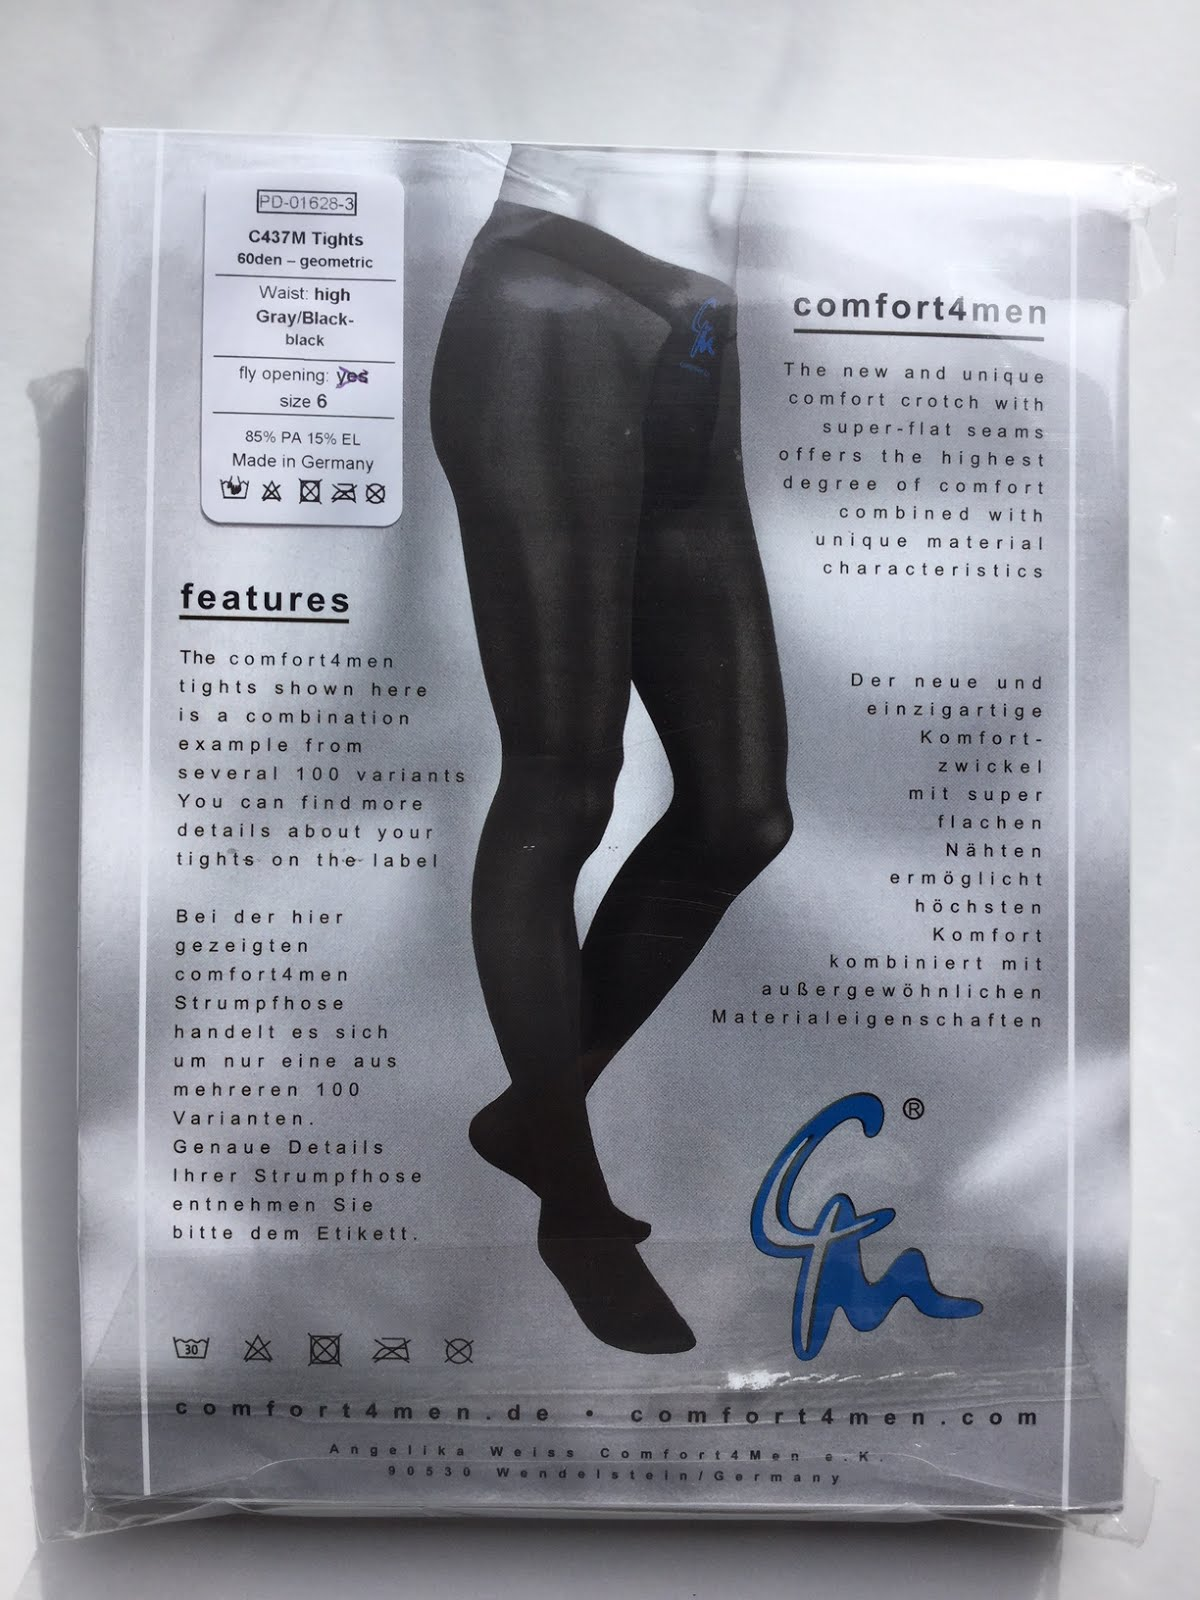 03ebcf4f7b7 Material and features. The C437M Comfort4Men 60 denier